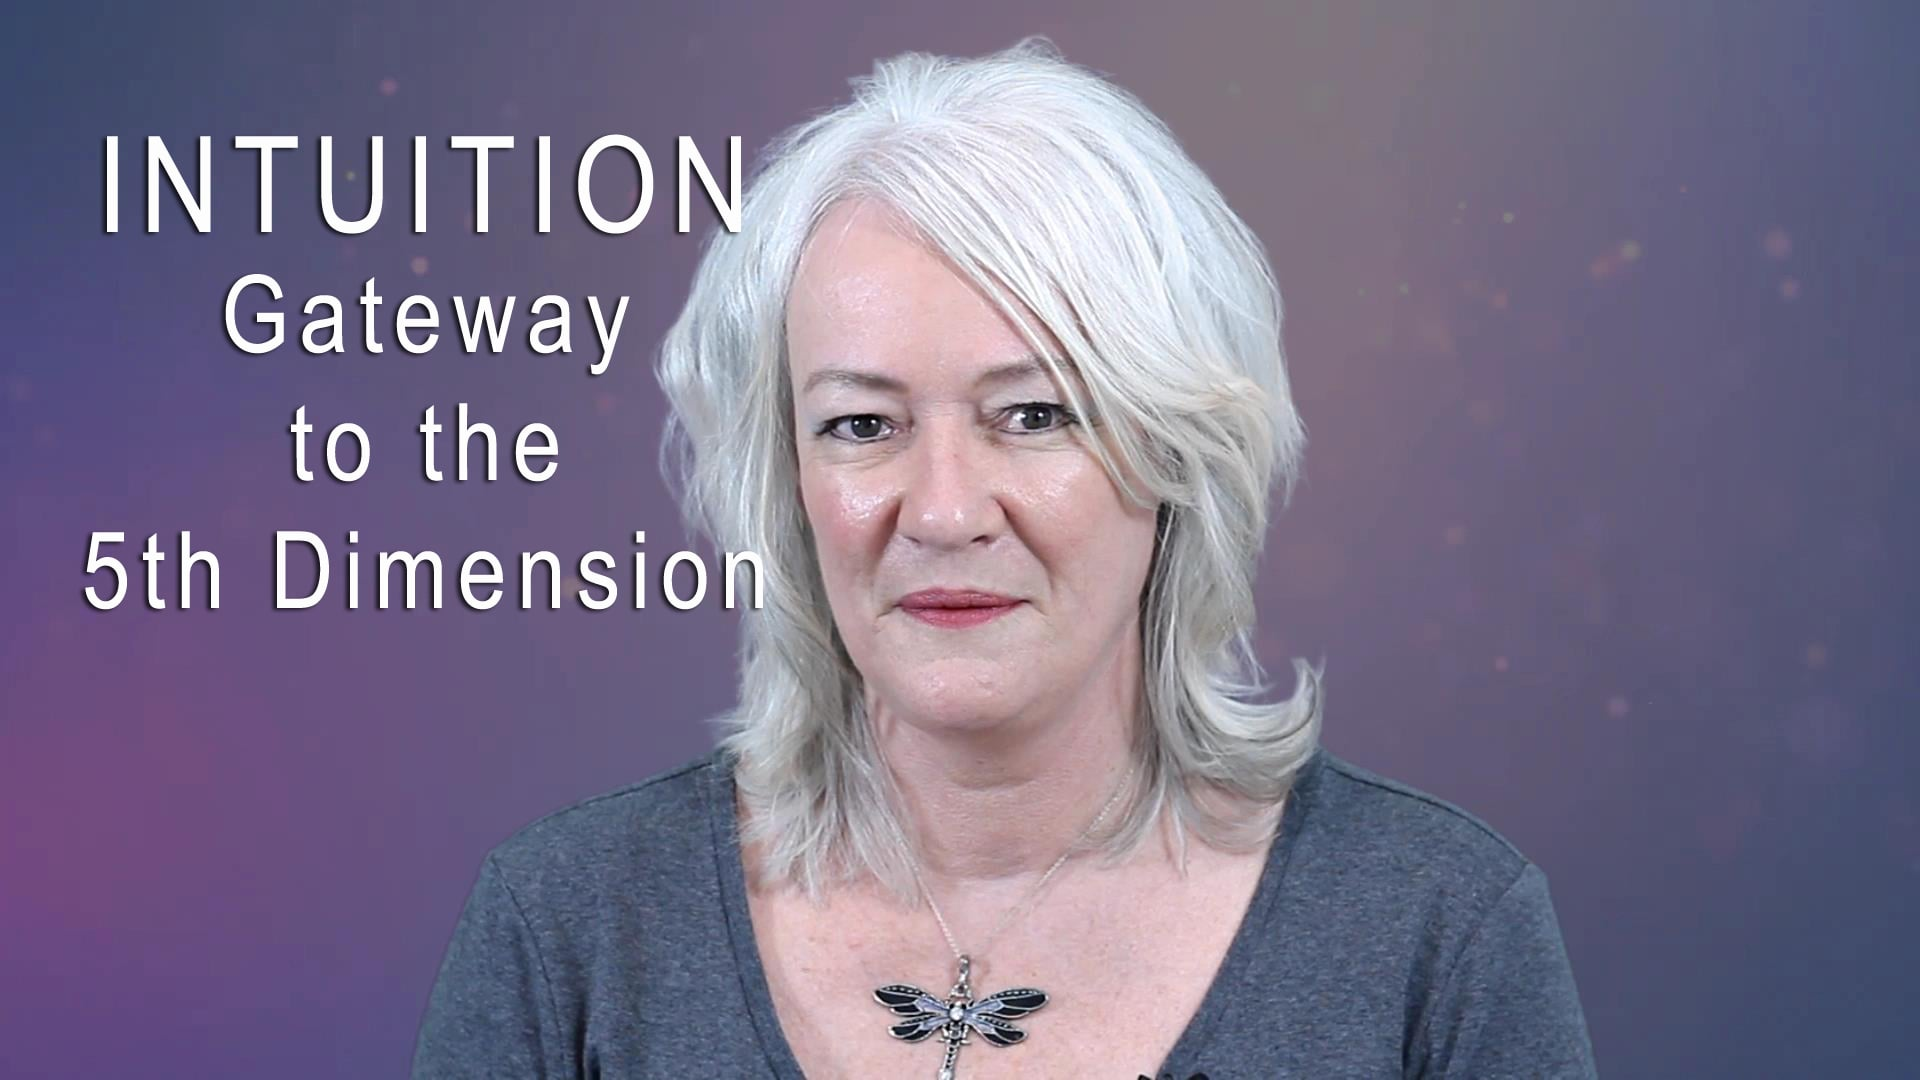 Intuition: Gateway to the 5th Dimension